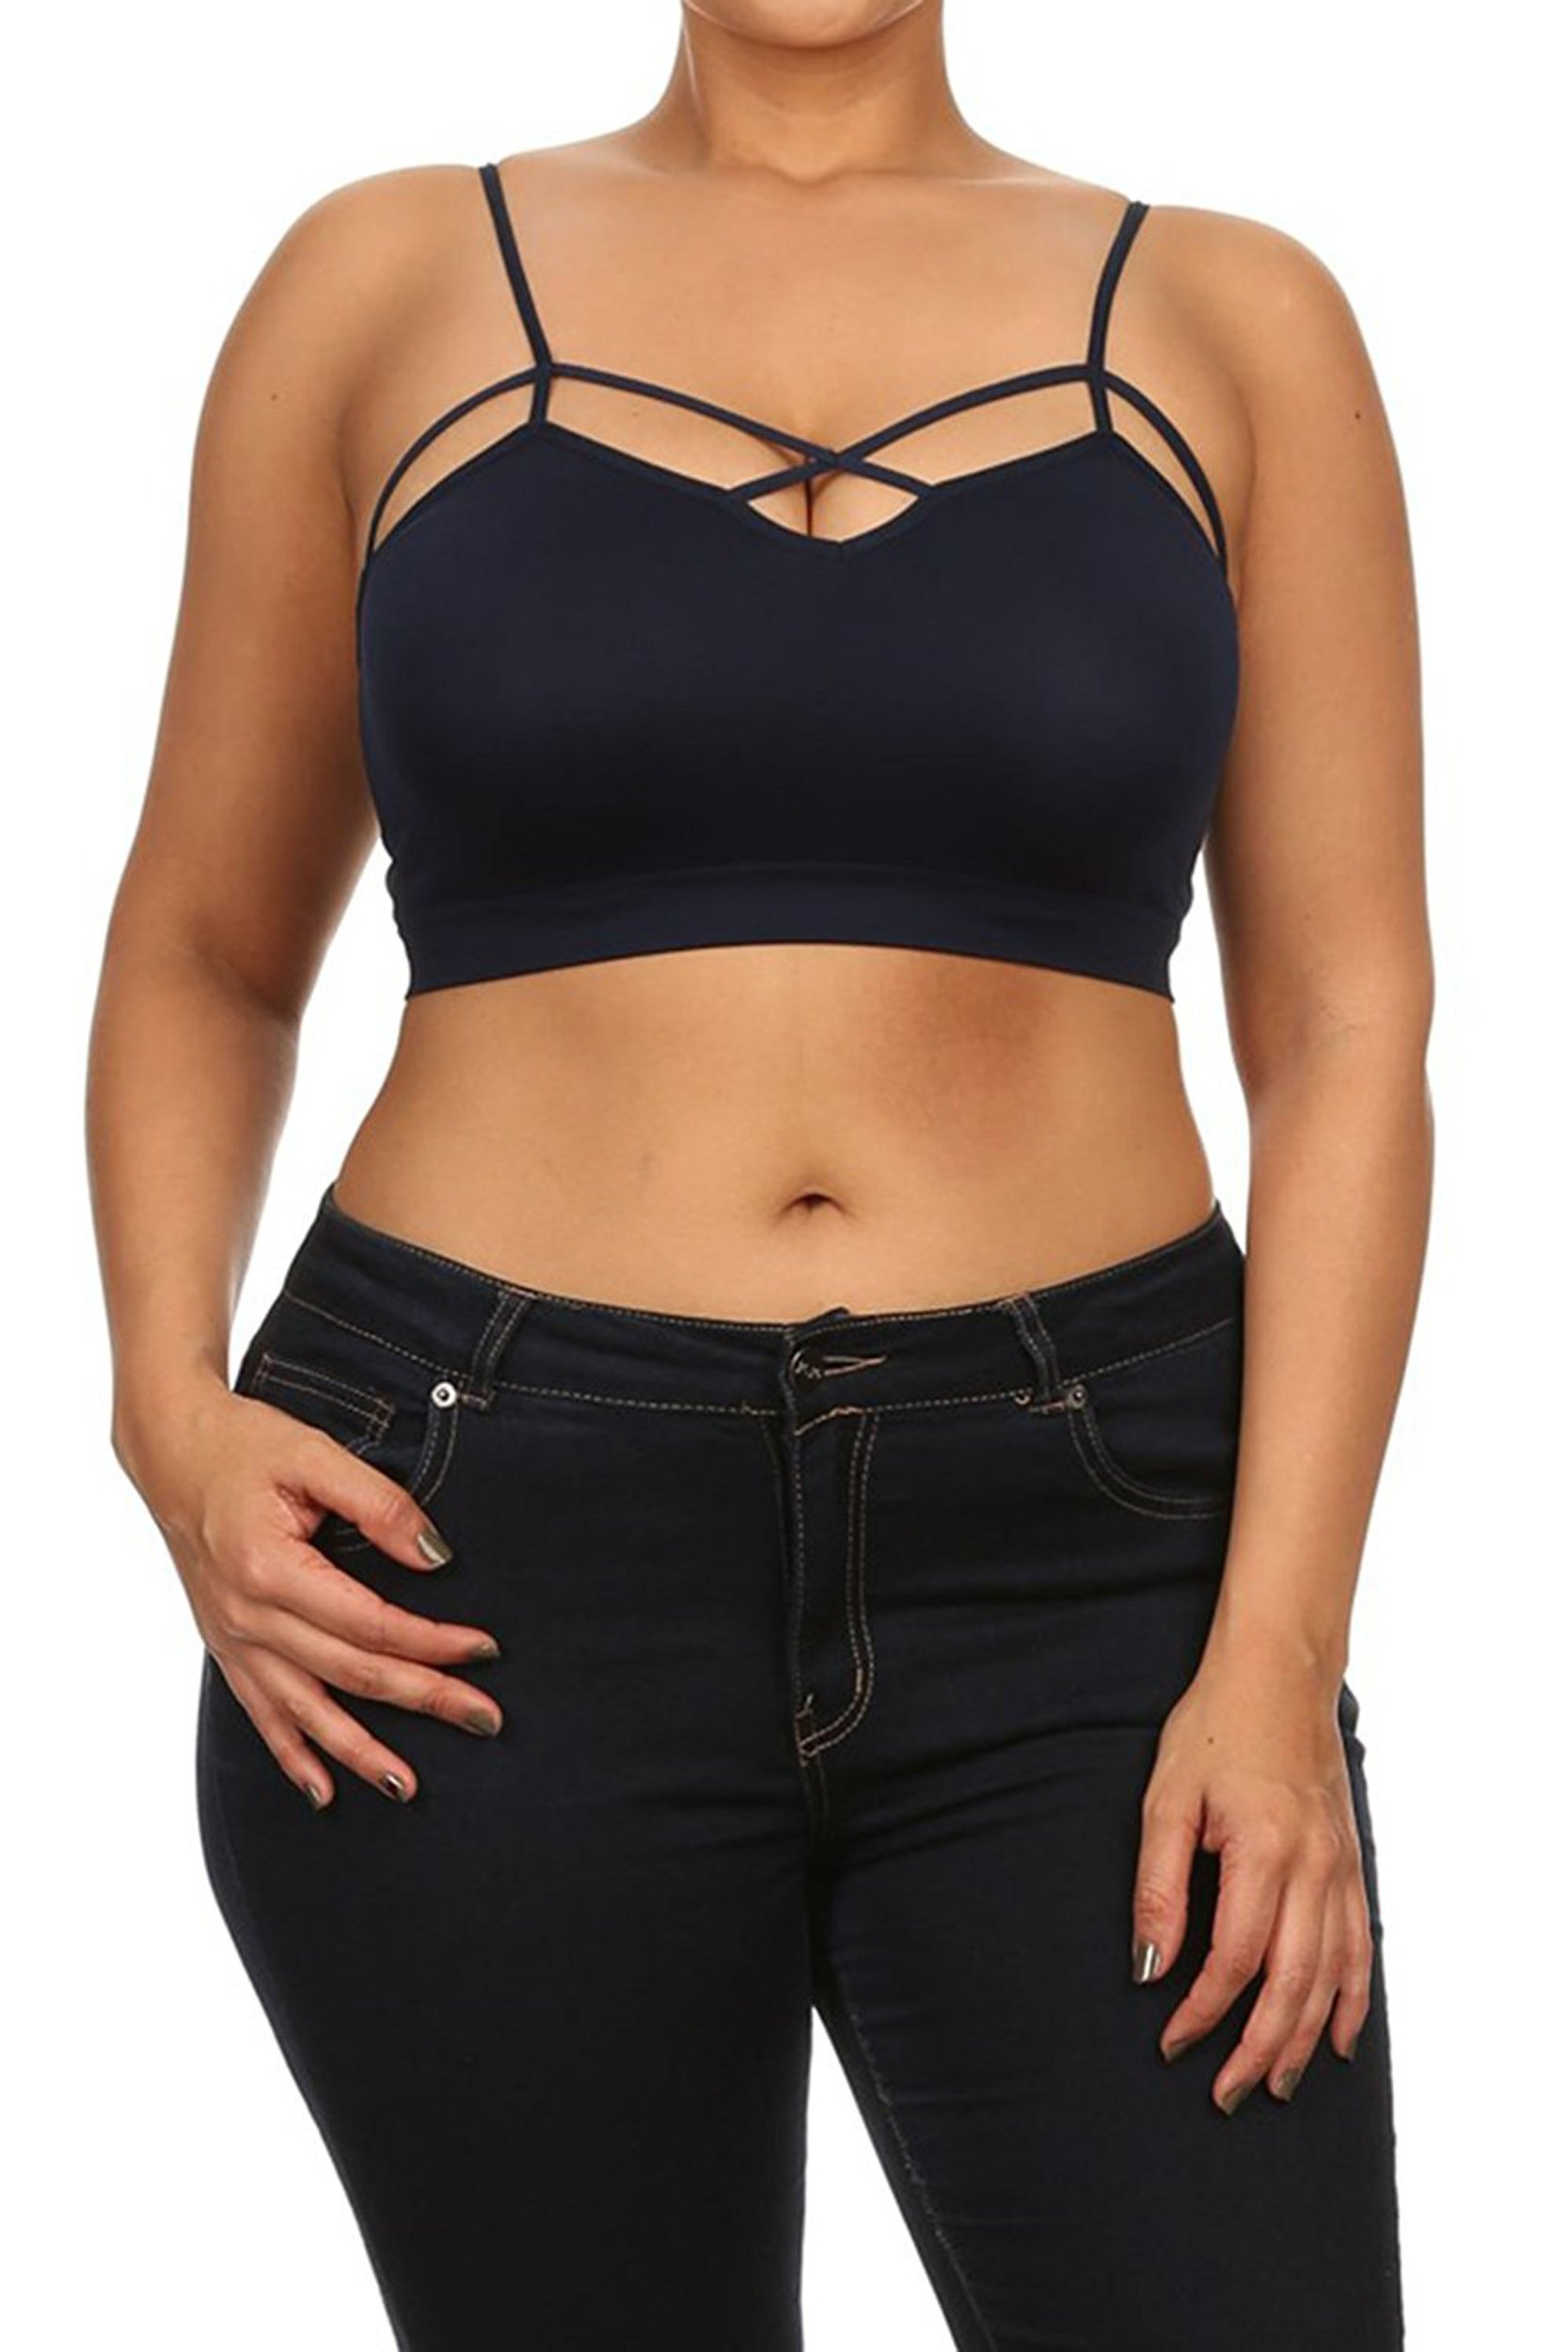 Ollie Arnes Women's (S-3X) Seamless Padded Bralette with Criss-Cross Detail 63_Navy 1X/2X